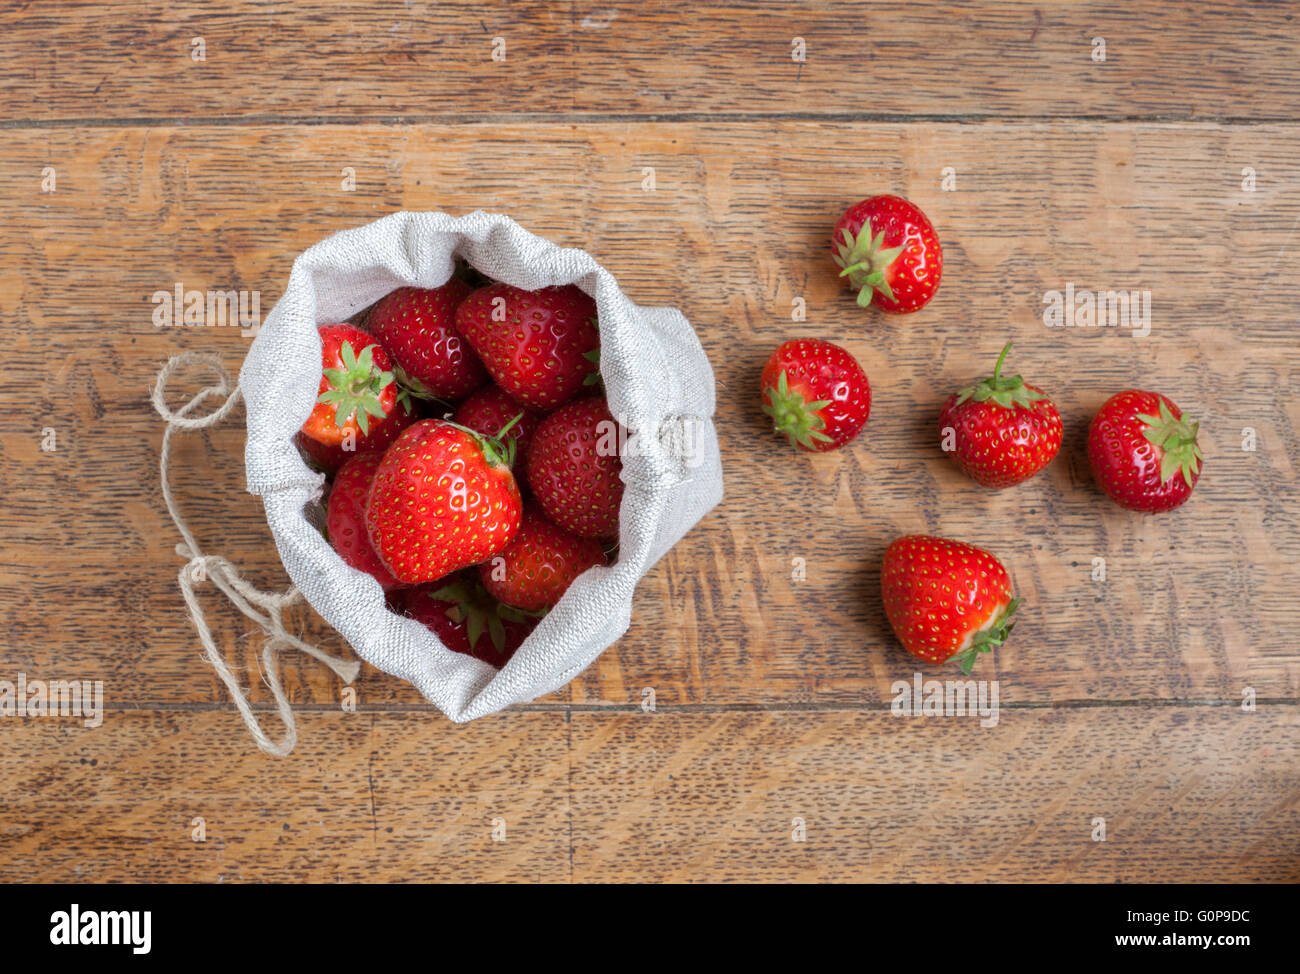 Overhead view of fresh strawberries in a small hessian bag on a wooden kitchen table with a loose strawberries beside - Stock Image